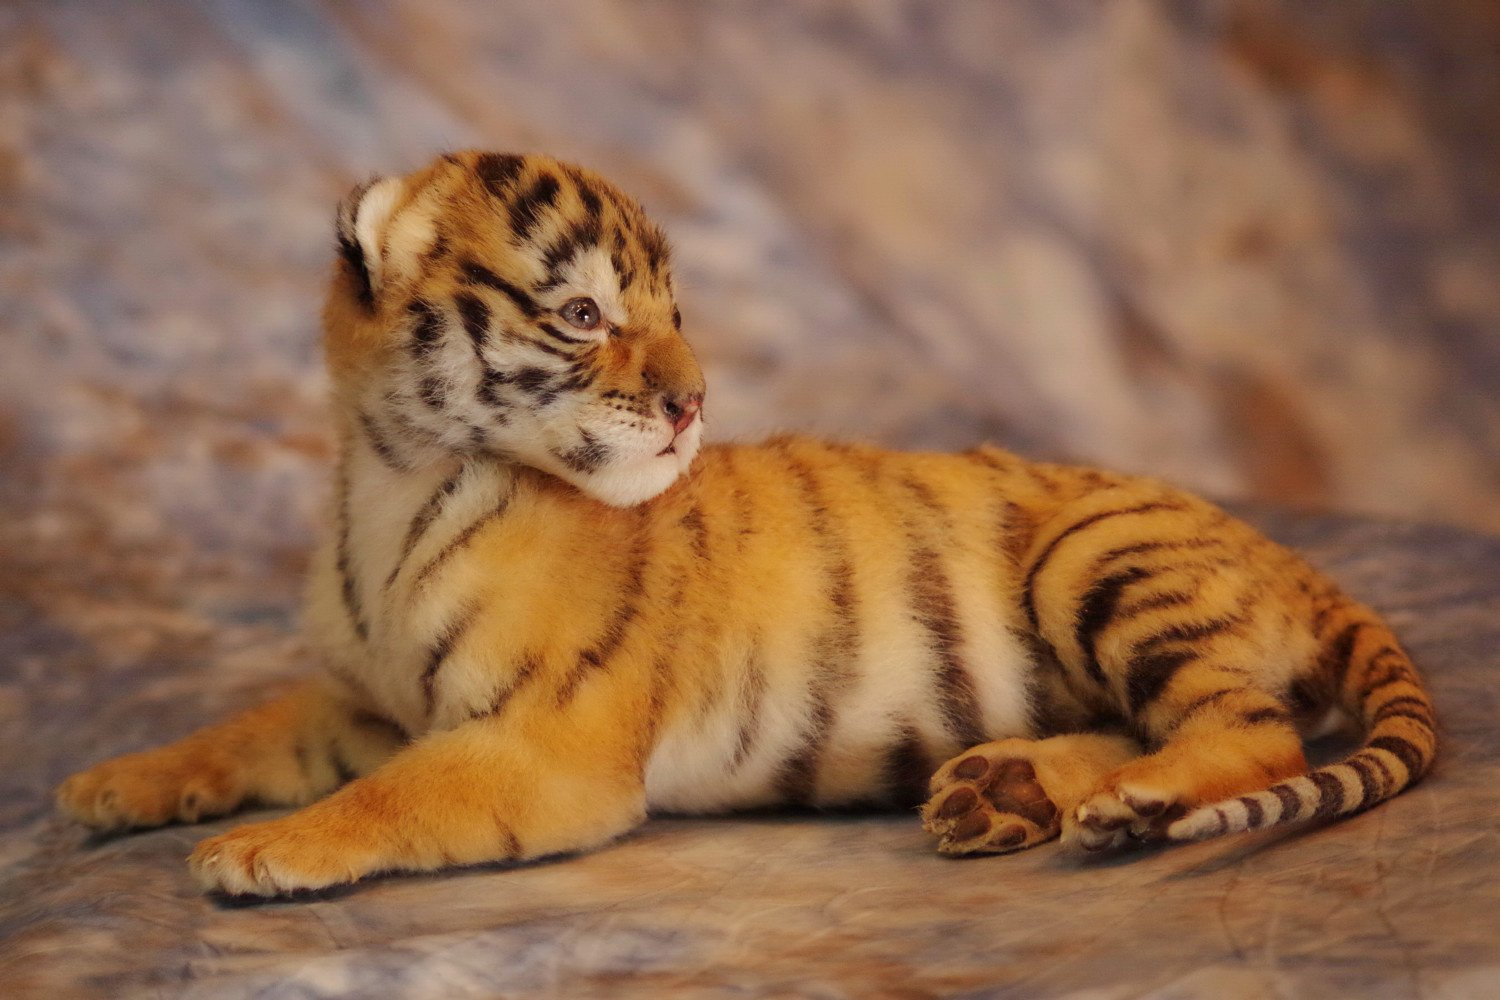 Donation - Dealer license # 43-c-0301. United States Dept. Agriculture.   We were commissioned to mount this stillborn, captive bred baby tiger for a museum in the Midwest that promotes world-wide tiger conservation.